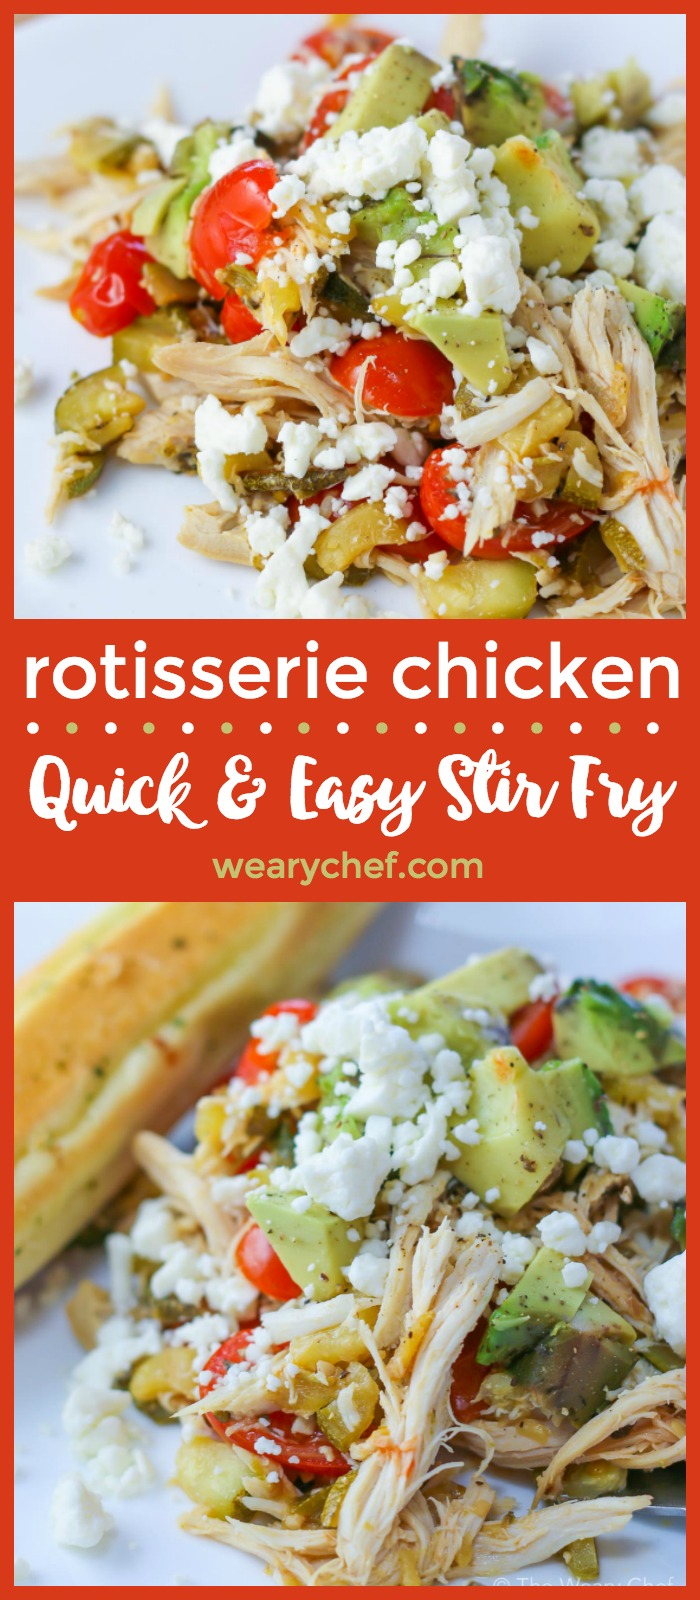 This quick and easy rotisserie chicken stir fry is loaded with fresh vegetables and topped with feta cheese. Serve it on its own or over couscous, rice, or pasta for a very satisfying dinner!